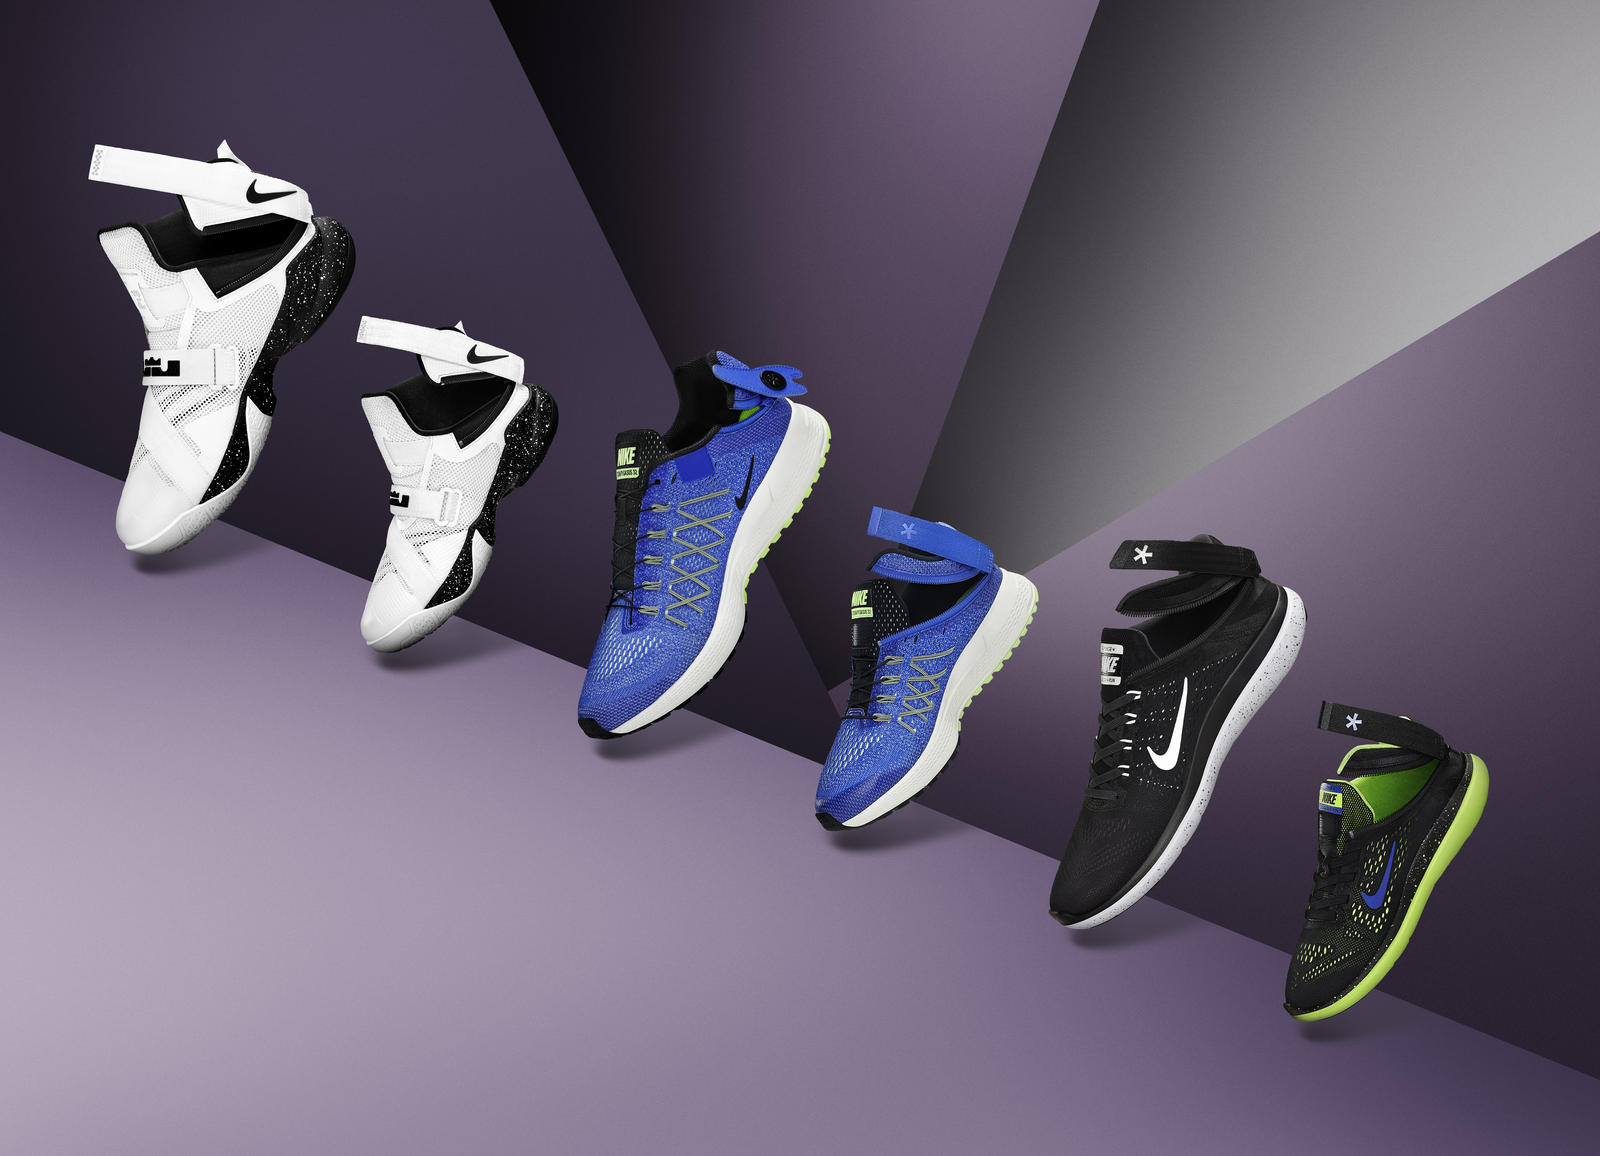 NIKE FLYEASE GOES INTO THE NEXT ROUND